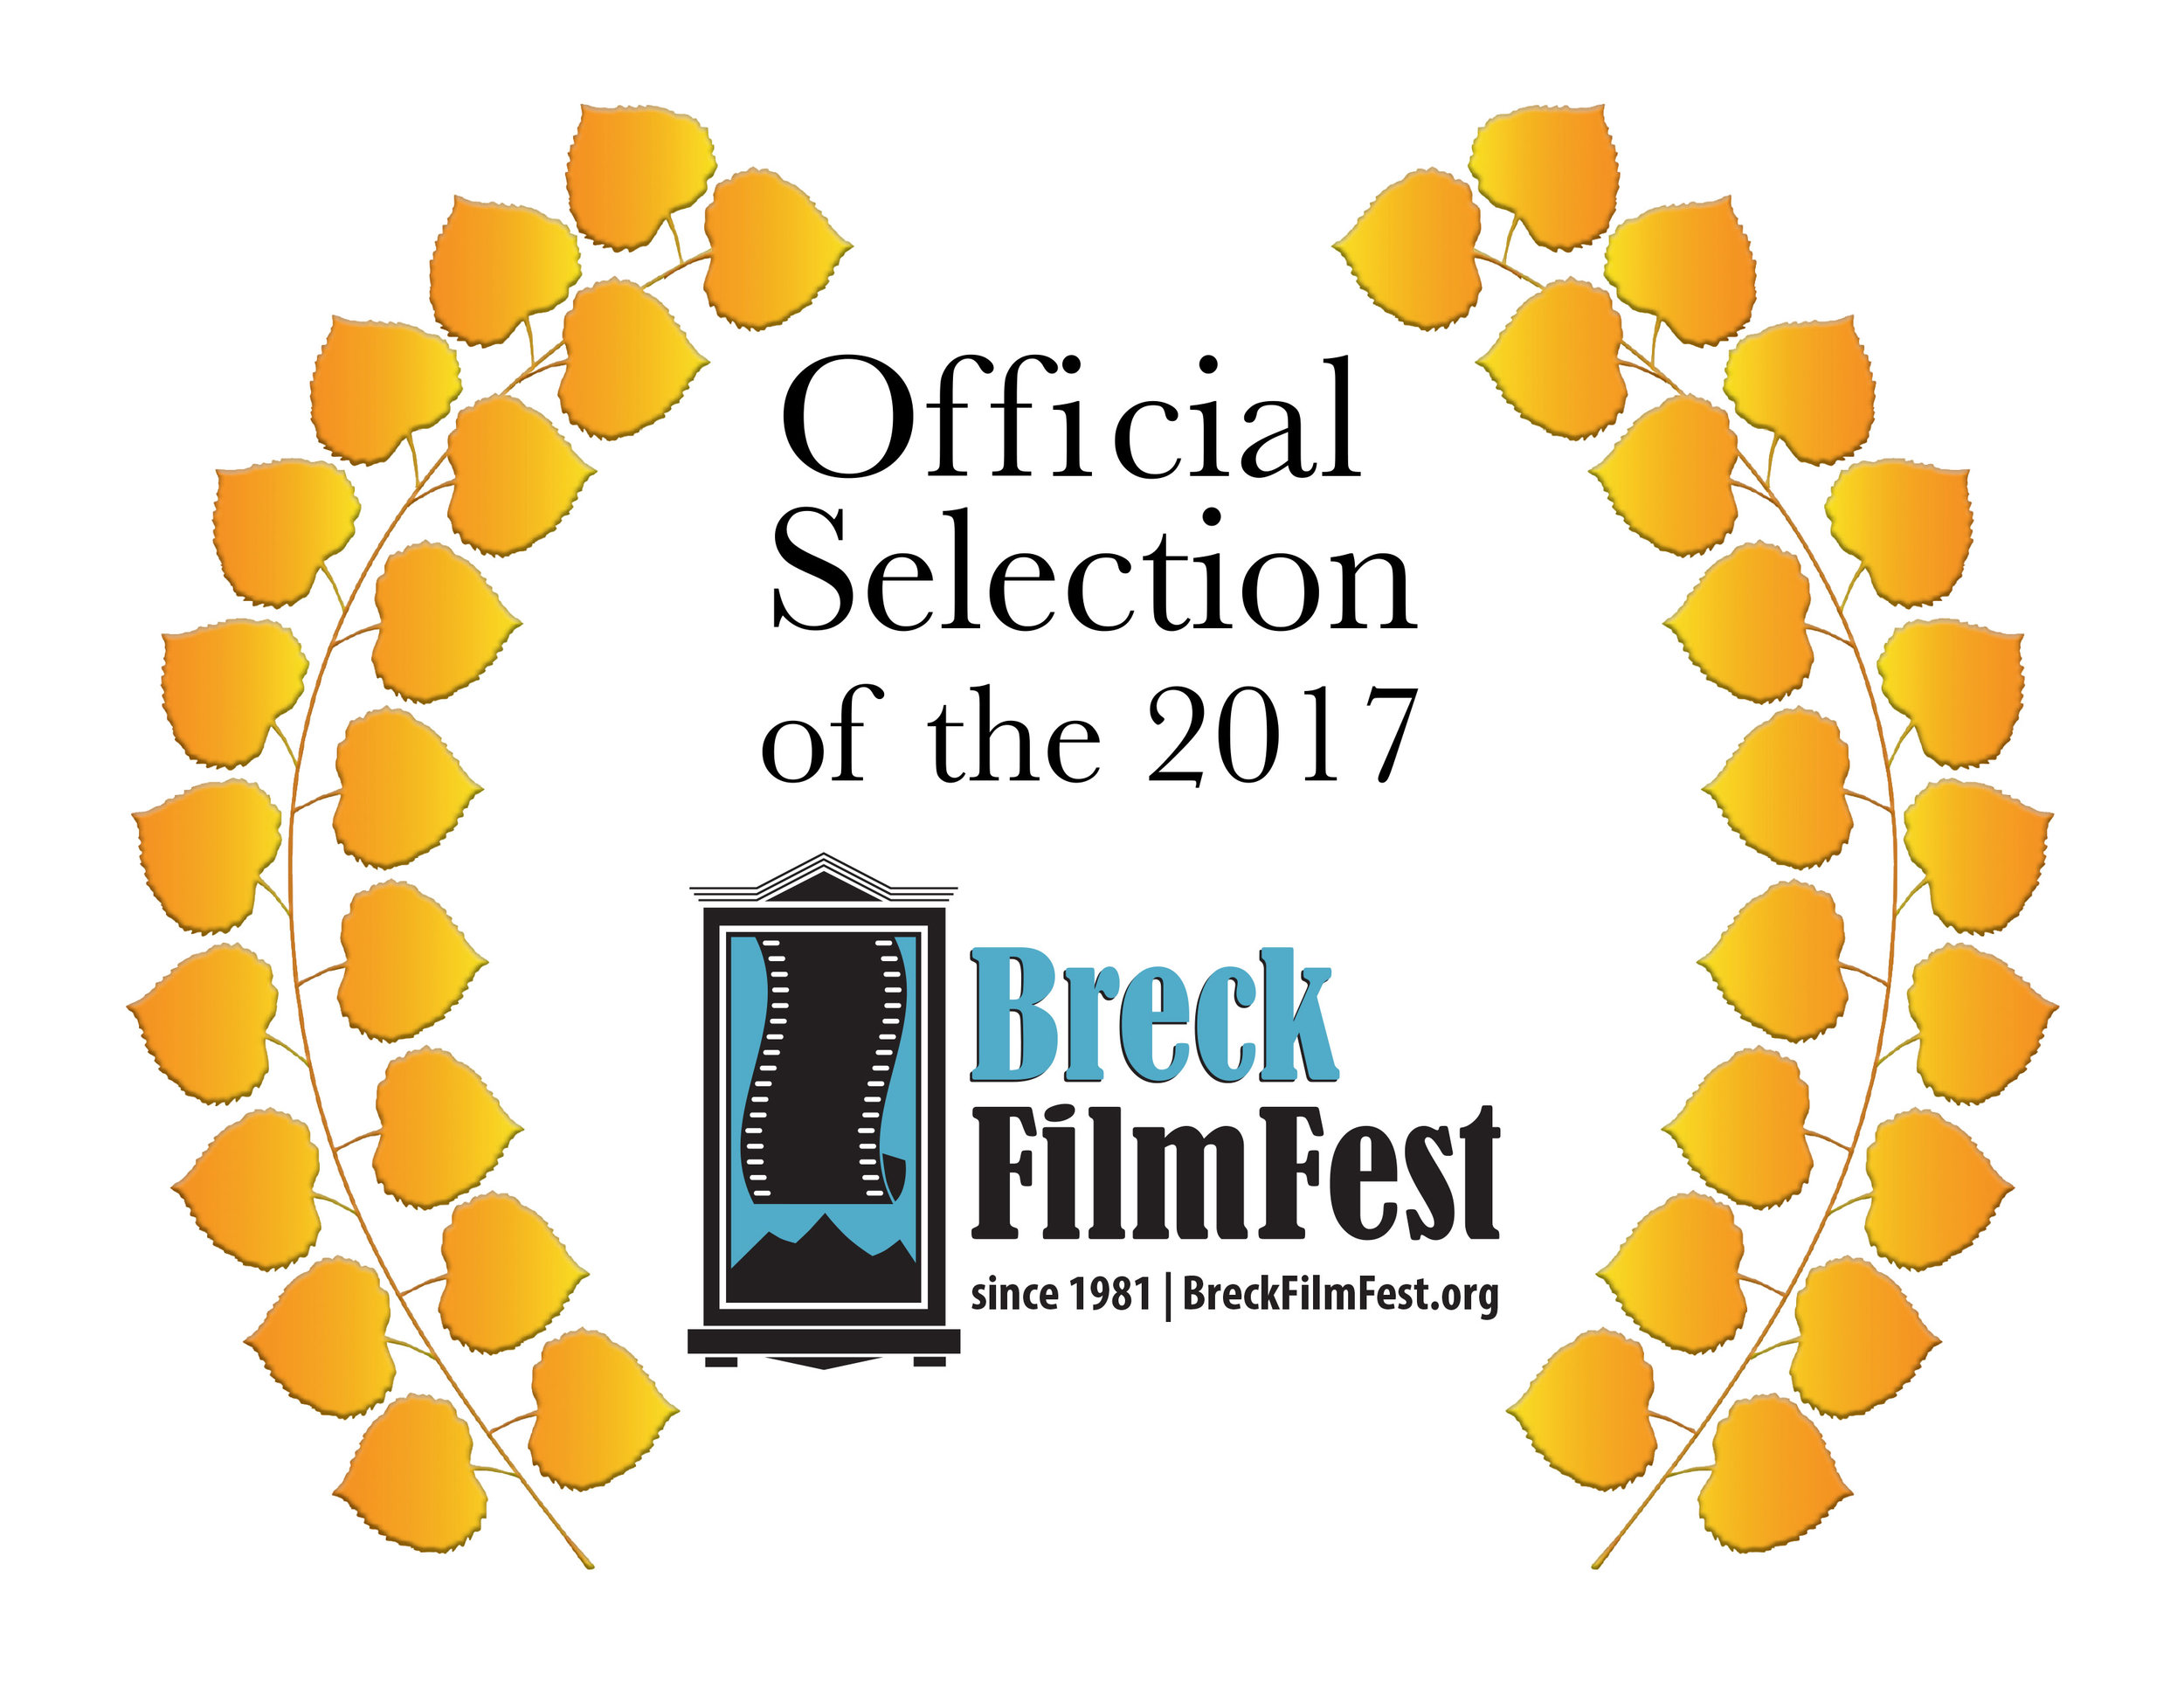 BreckenridgeFilm Festival - Baggagewent to Colorado last fall! We were featured in the Breckenridge Film Festivalwhich ran from September 21st-24th. For more info check out http://breckfilmfest.org.